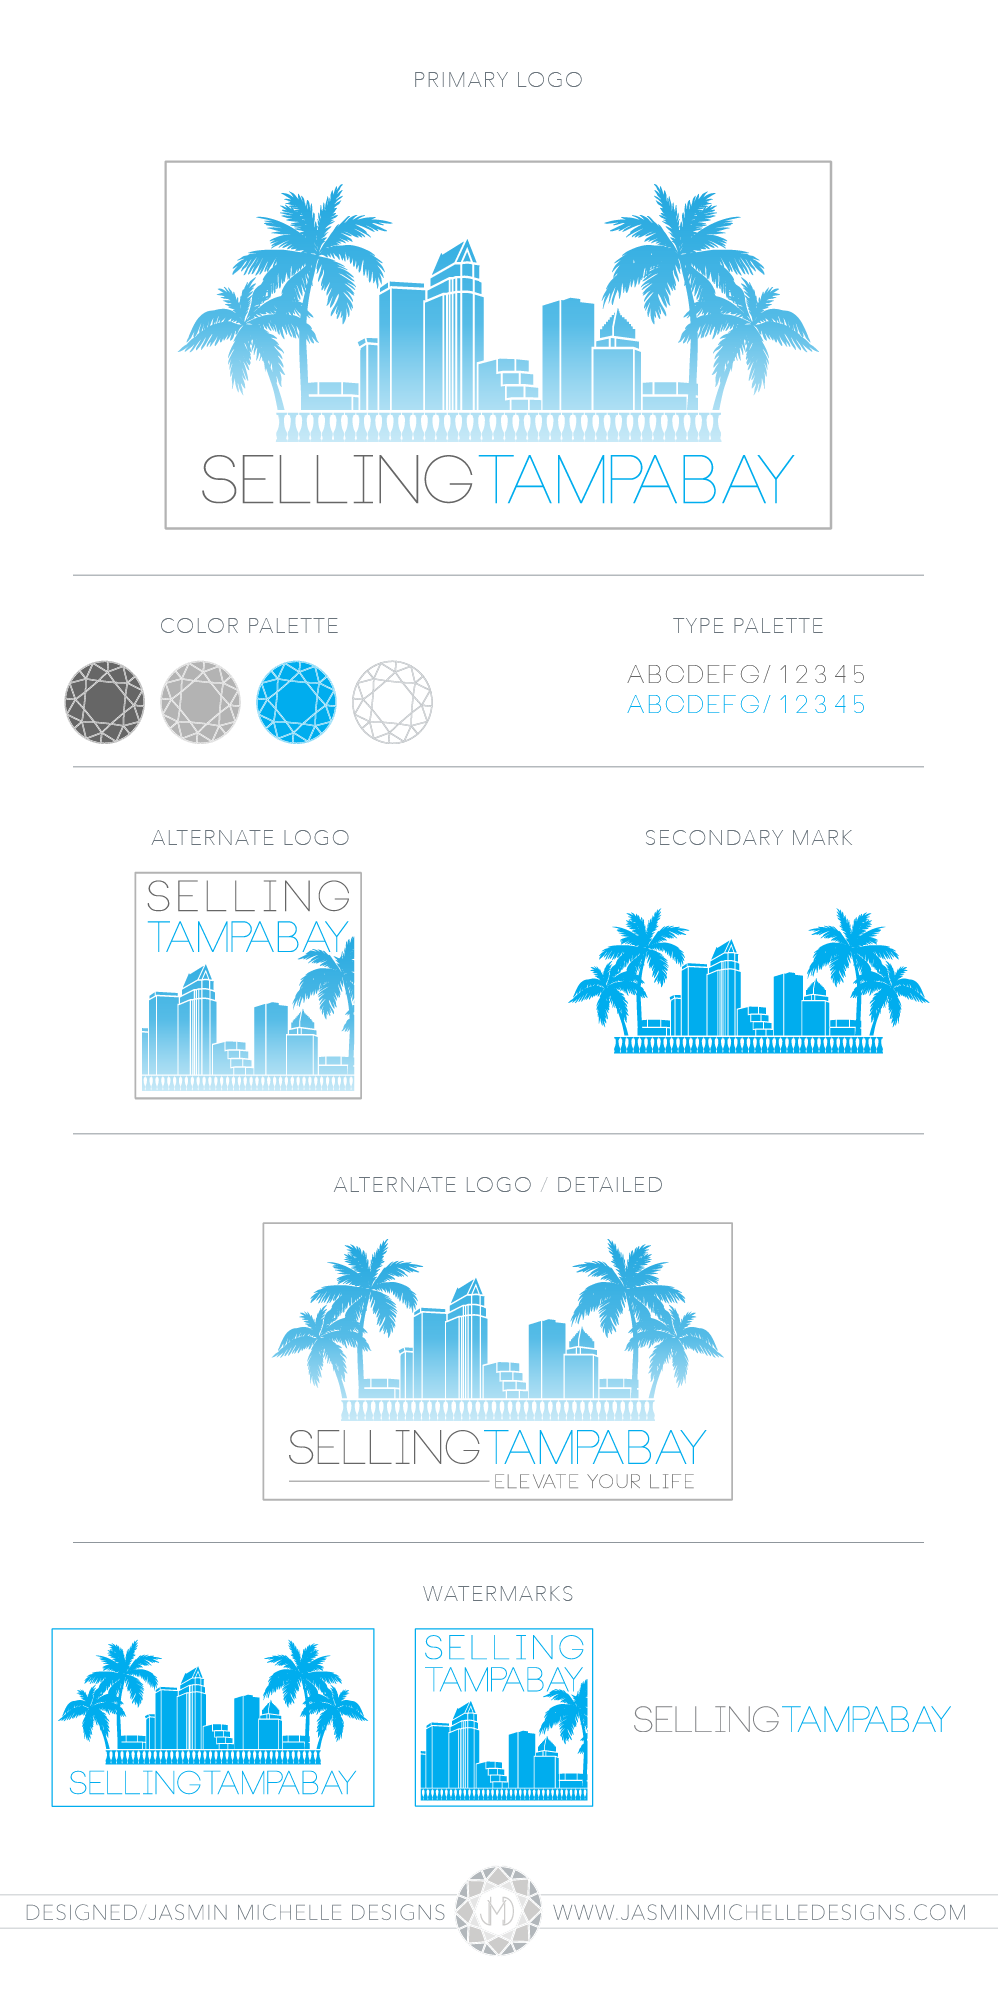 jmdimage_folio_casestudy_selling-tampa-bay